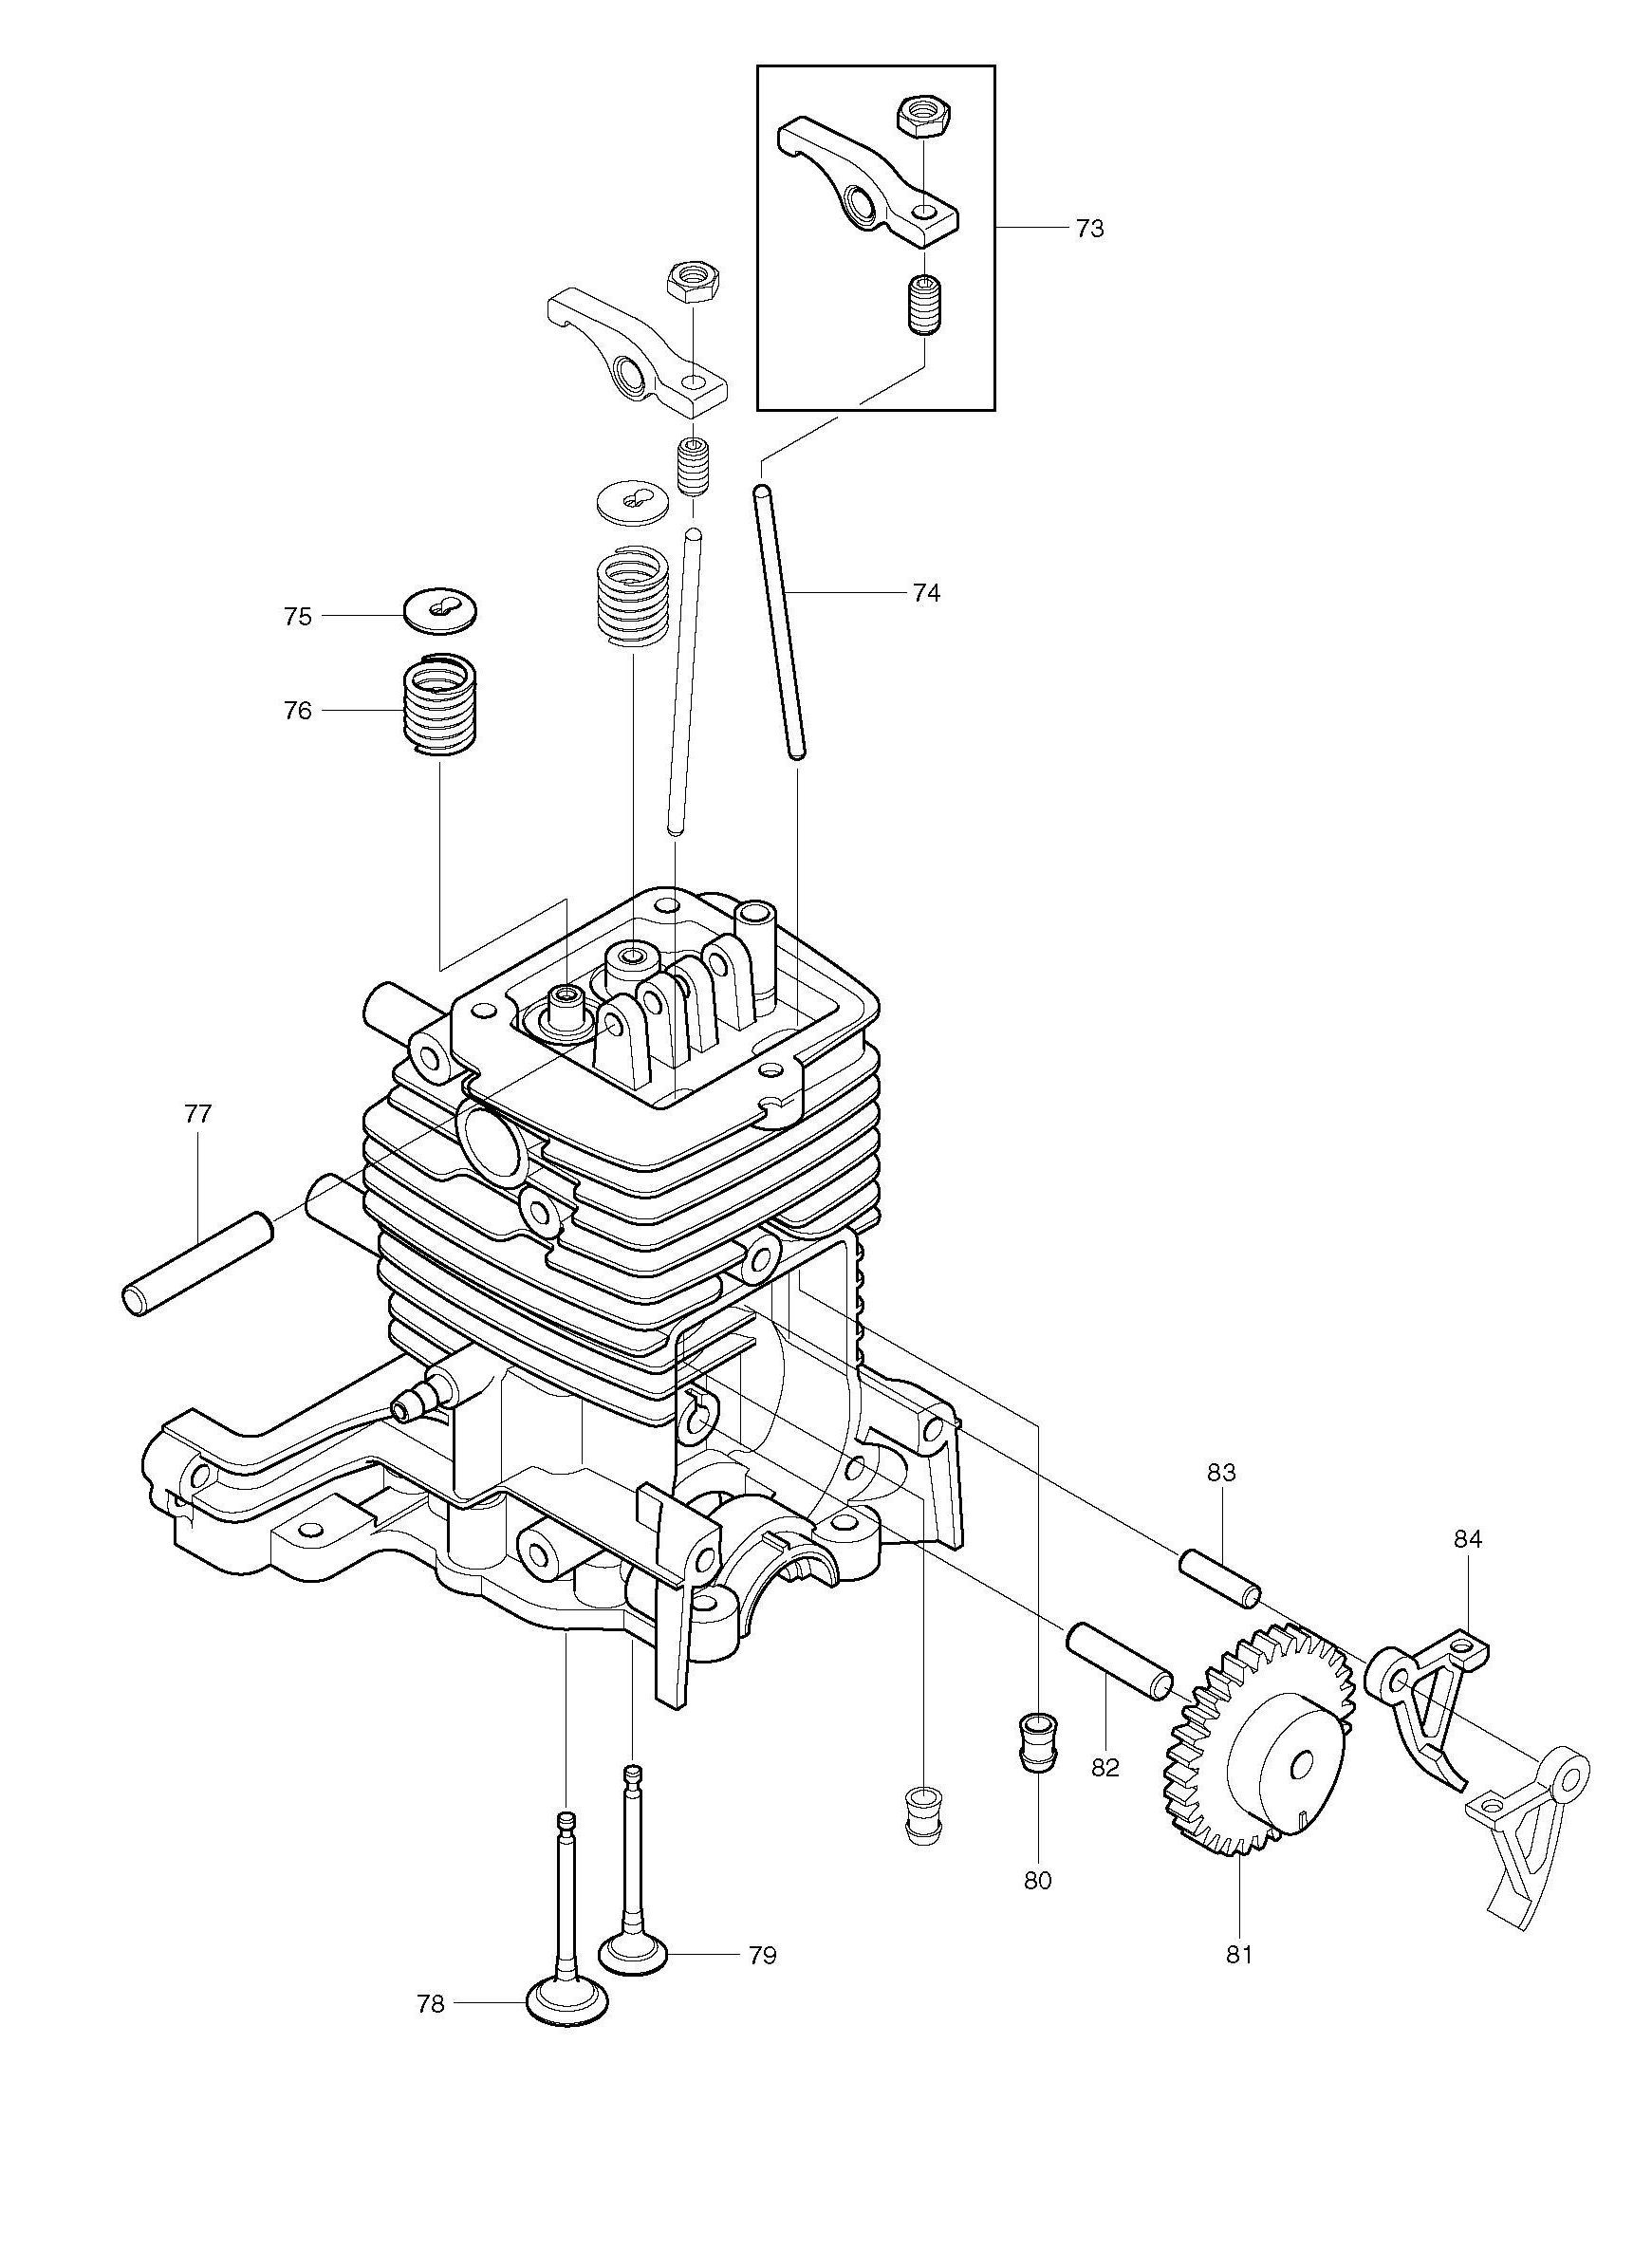 4stroke Engine Diagram Spares For Makita Bhx2500 4 Stroke Petrol Blower Spare From